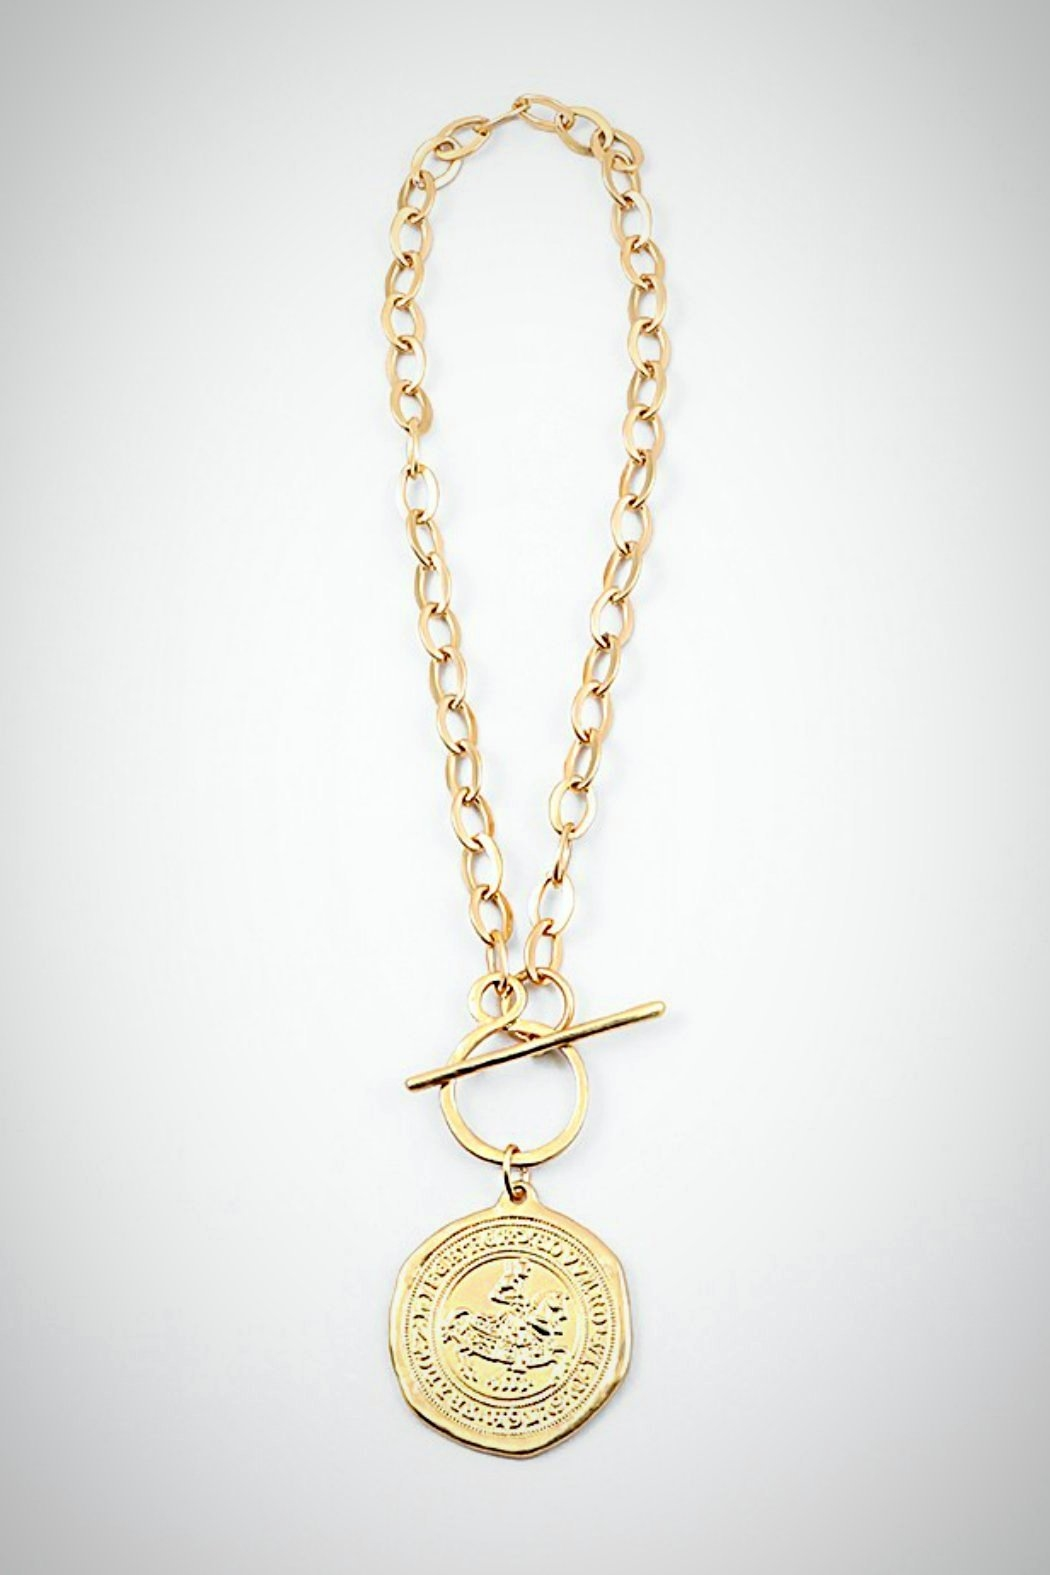 Embellish Gold Coin Necklace from Pennsylvania by ...